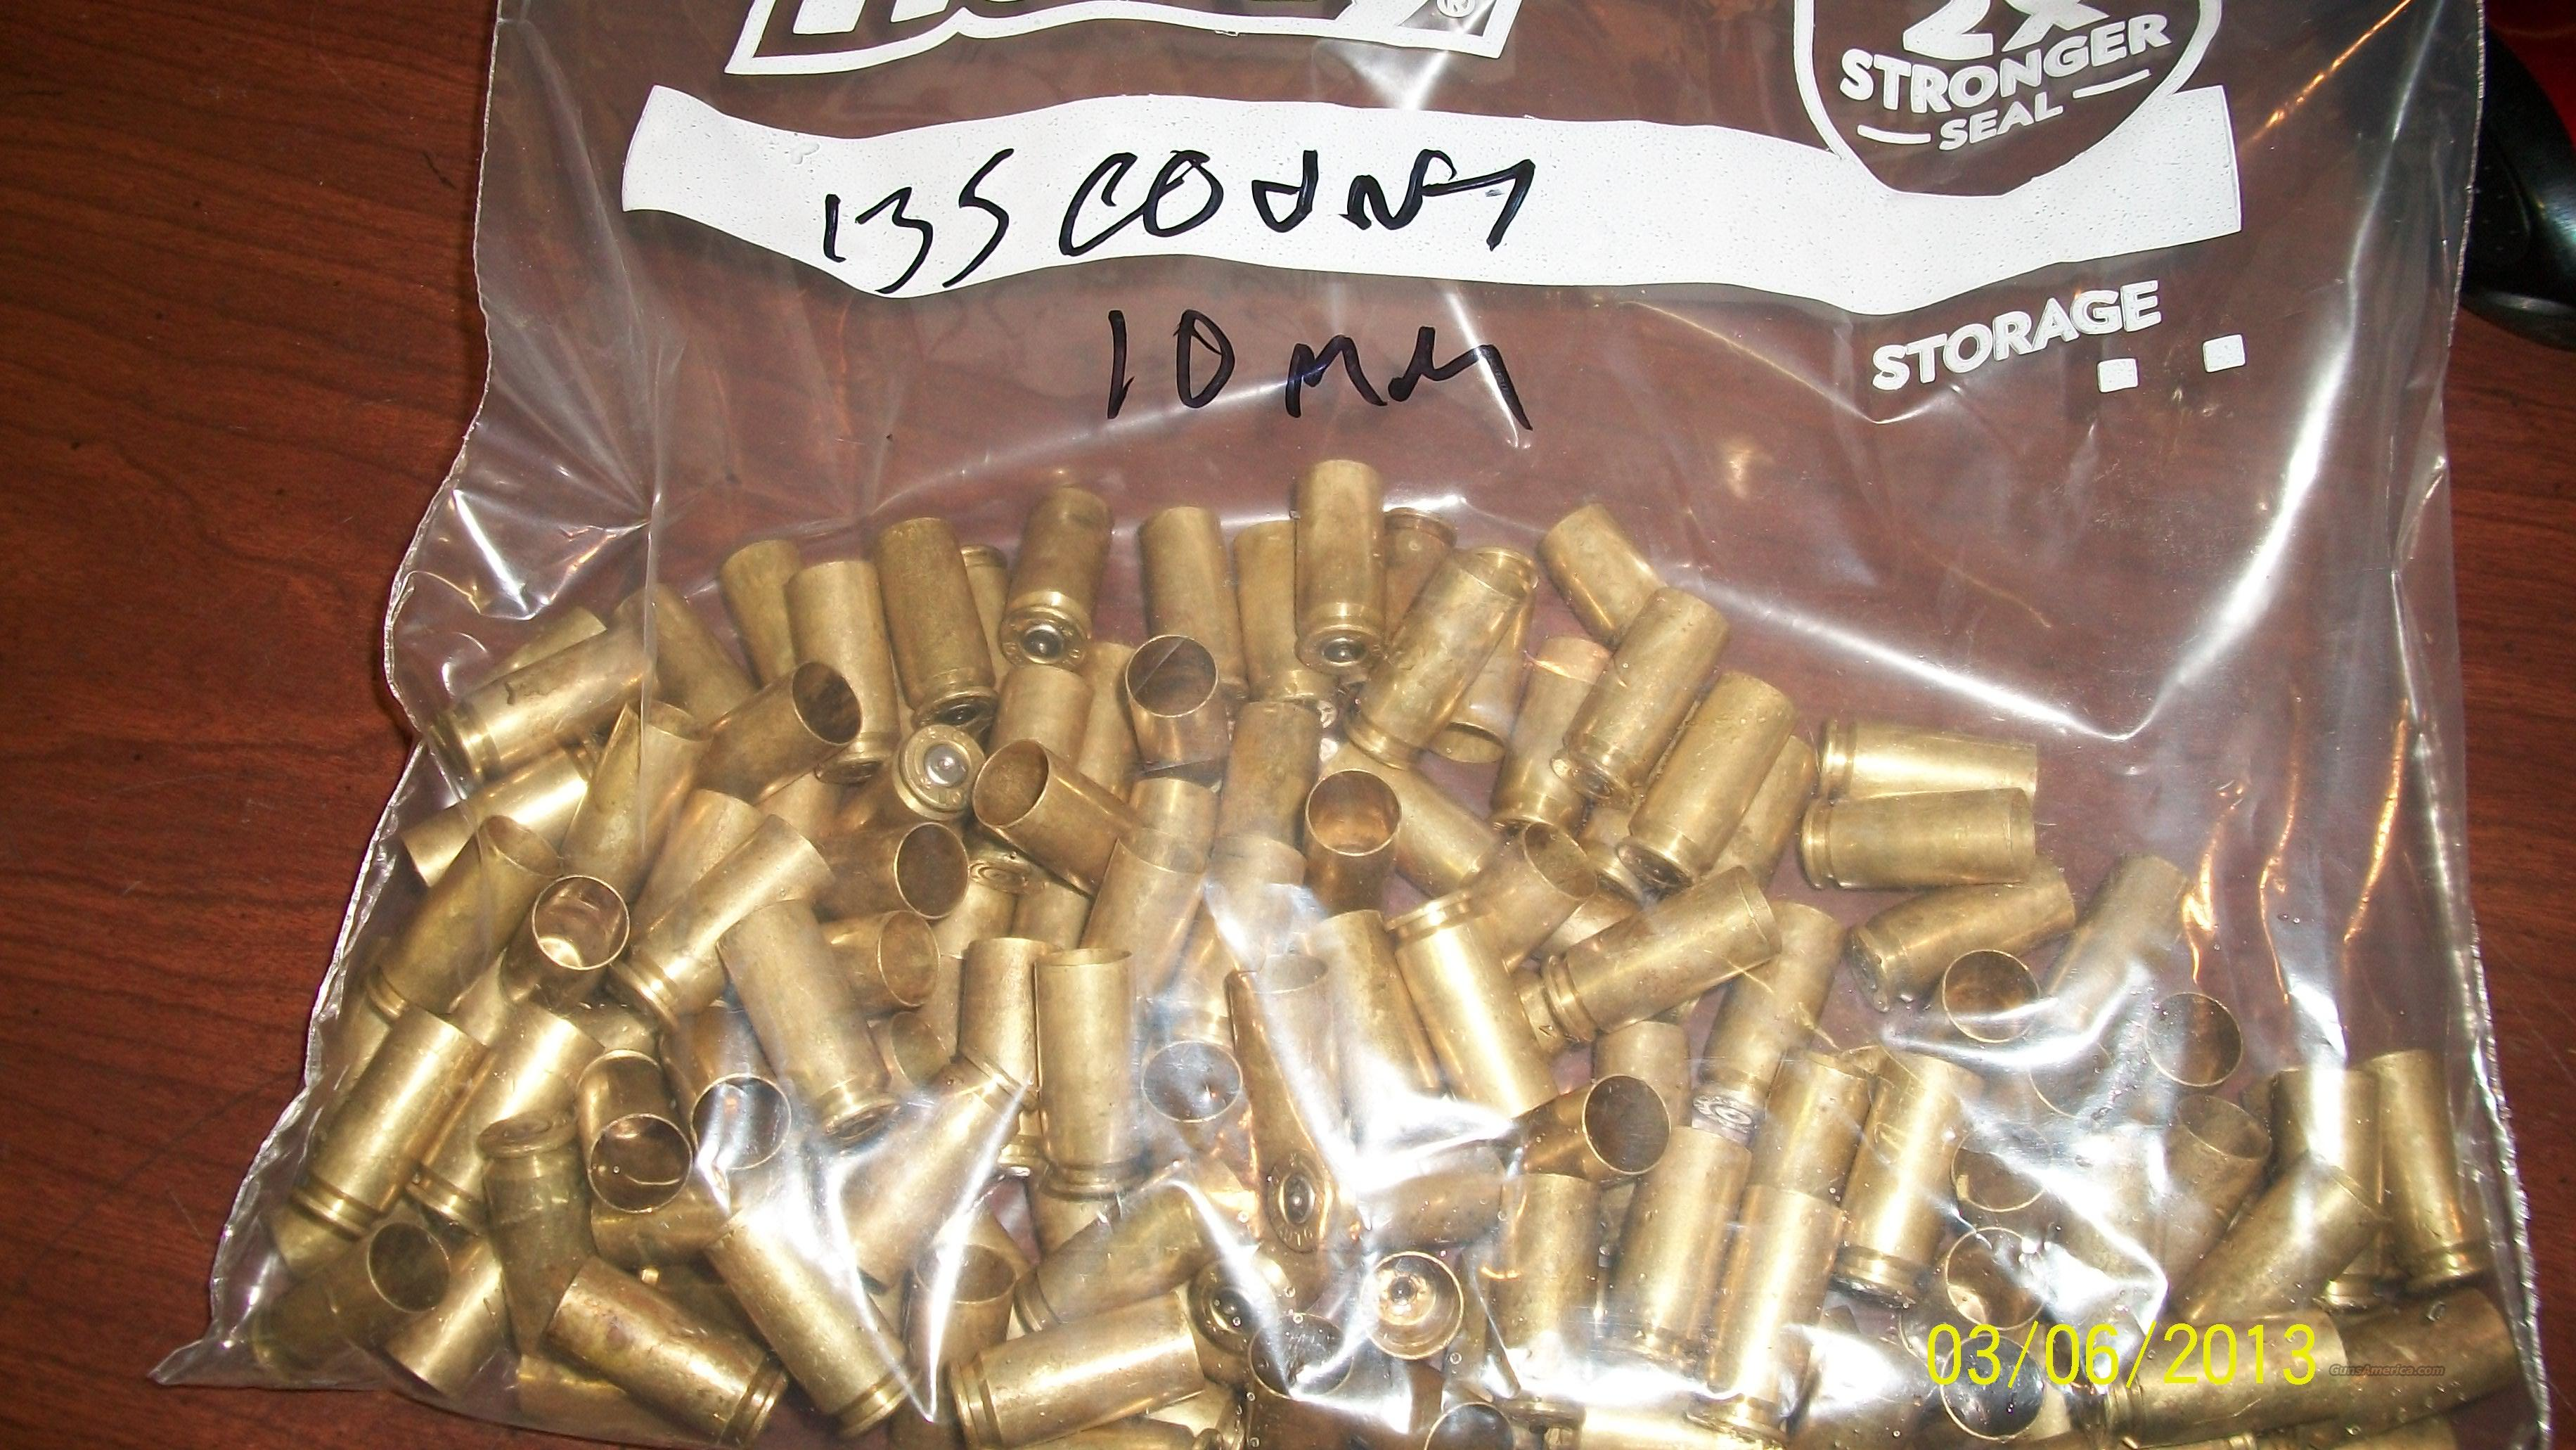 10mm Brass 135 peices once fired  Non-Guns > Reloading > Components > Brass